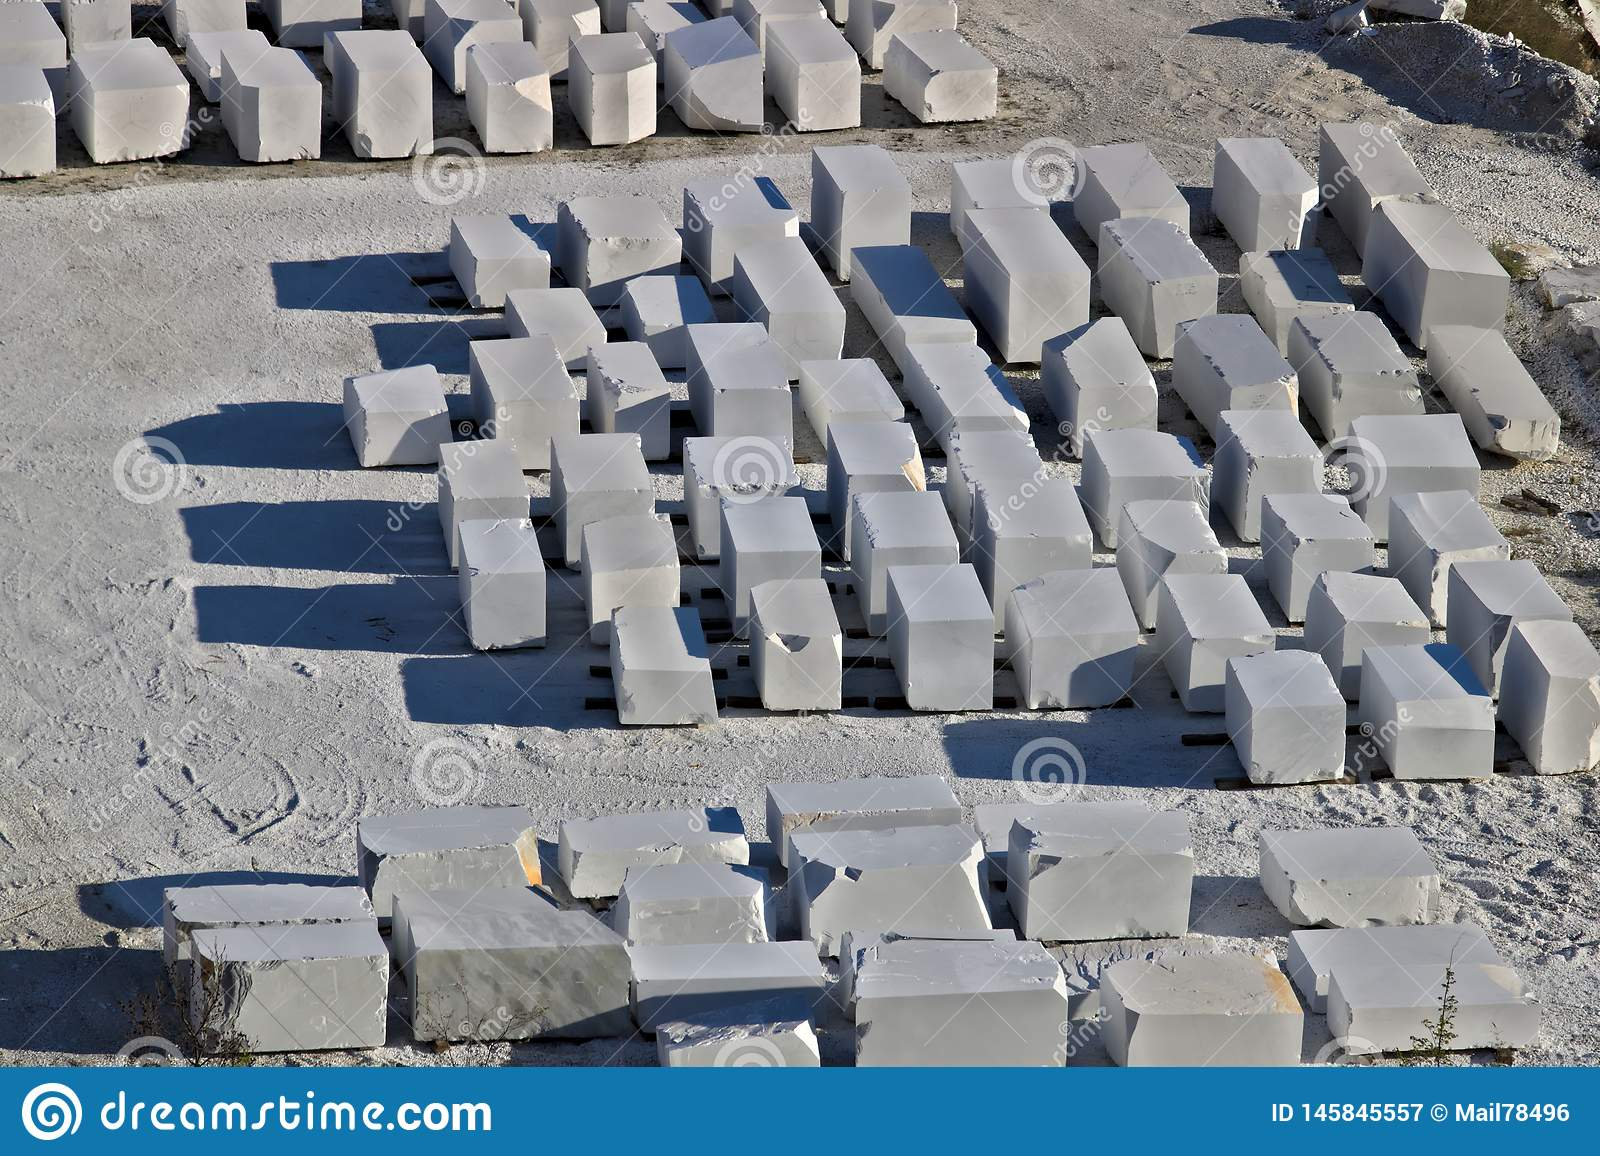 Apuan Alps Carrara Tuscany Italy March 28 2019 White Carrara Marble Blocks In A Warehouse Stock Image Image Of Site Quarry 145845557